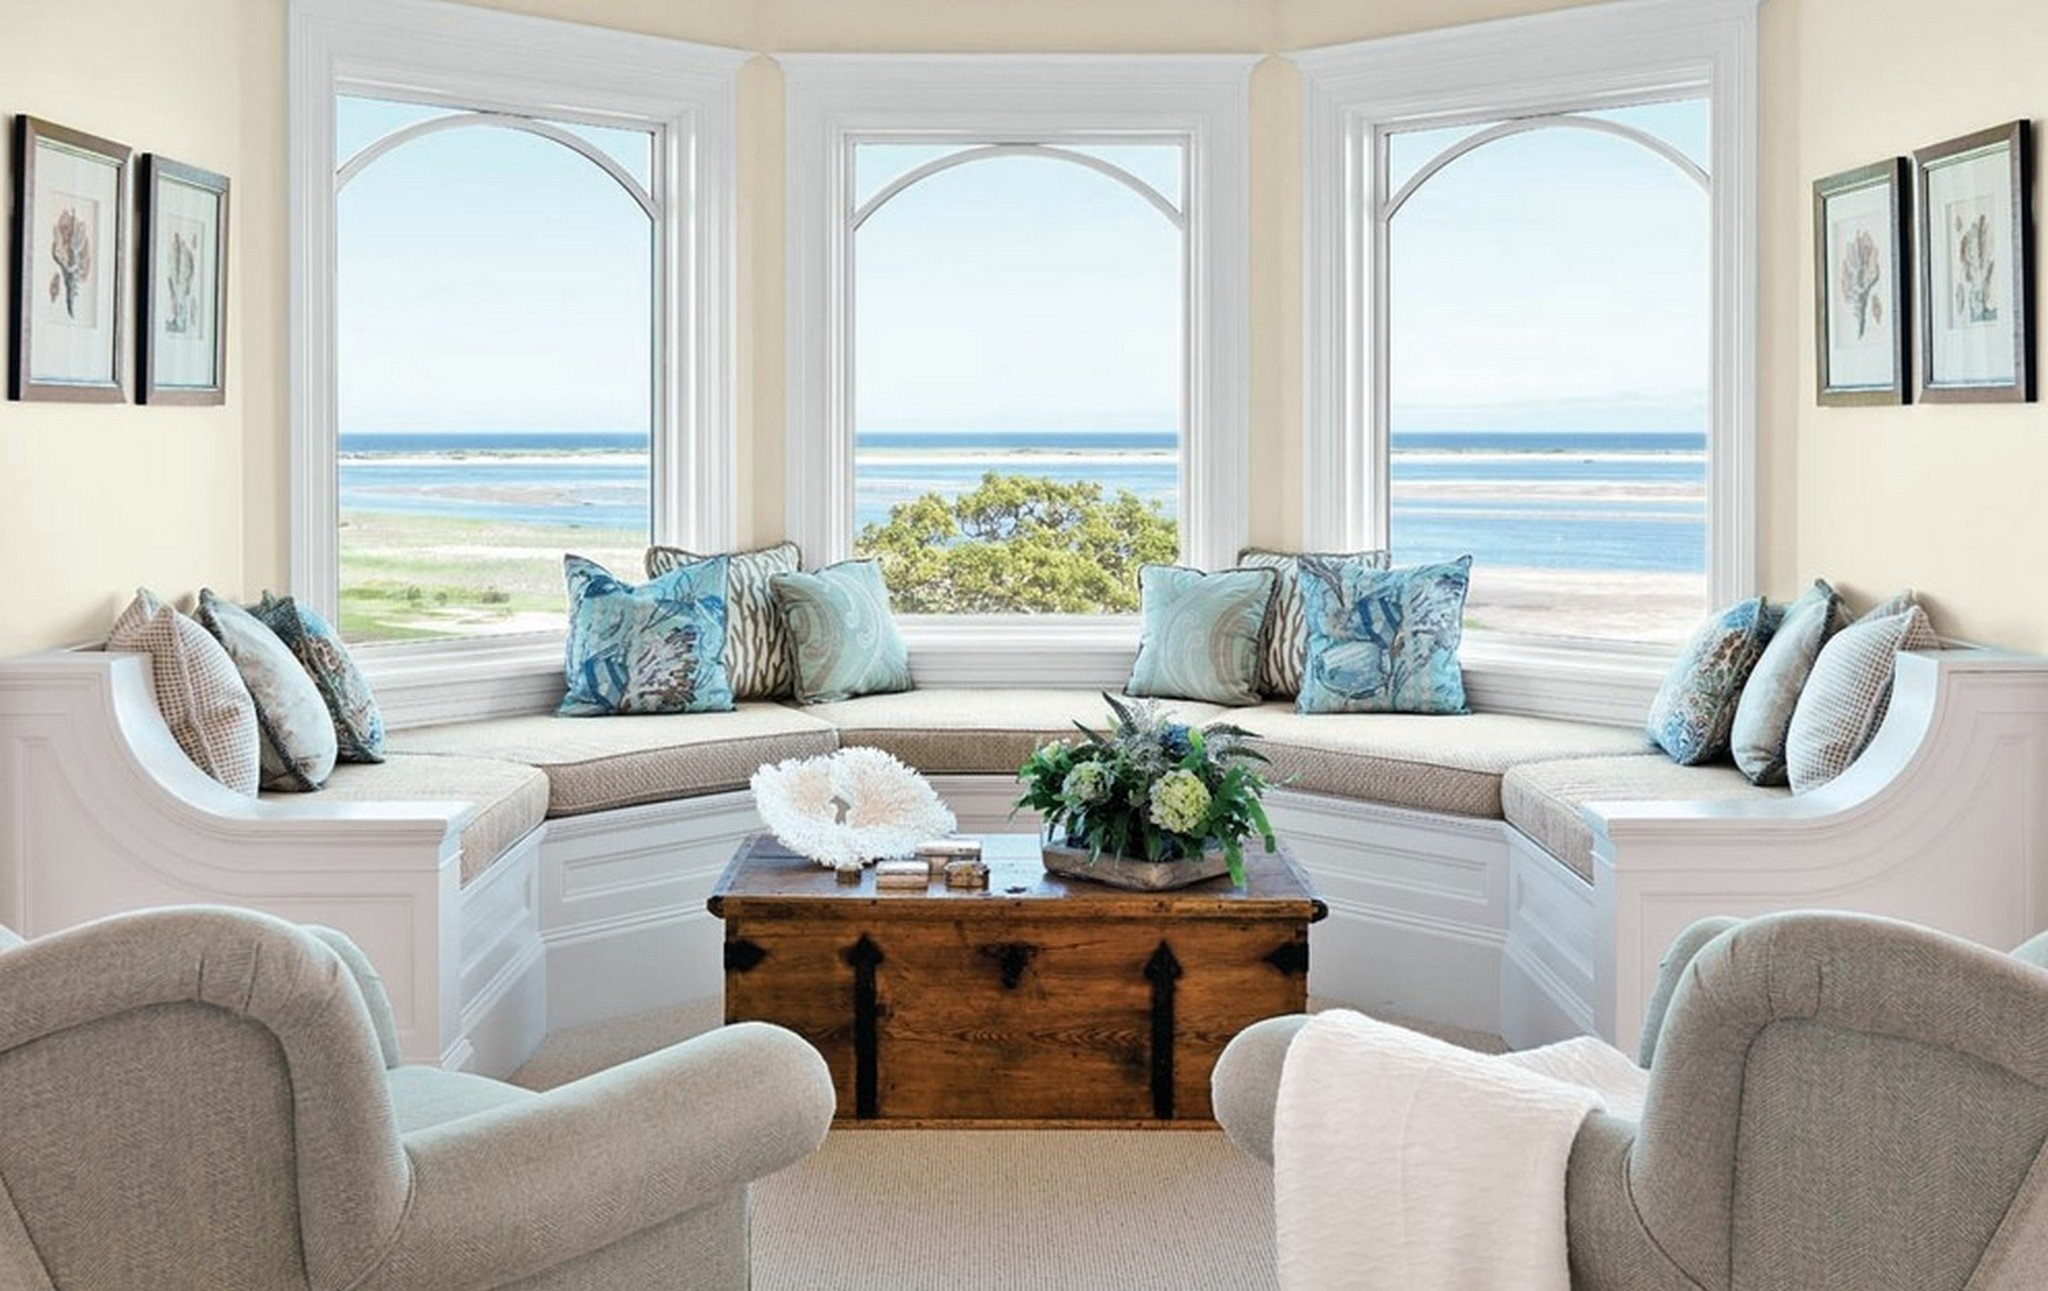 10 Fashionable Beach Themed Living Room Ideas renovate your home decor diy with perfect amazing beach themed 2021